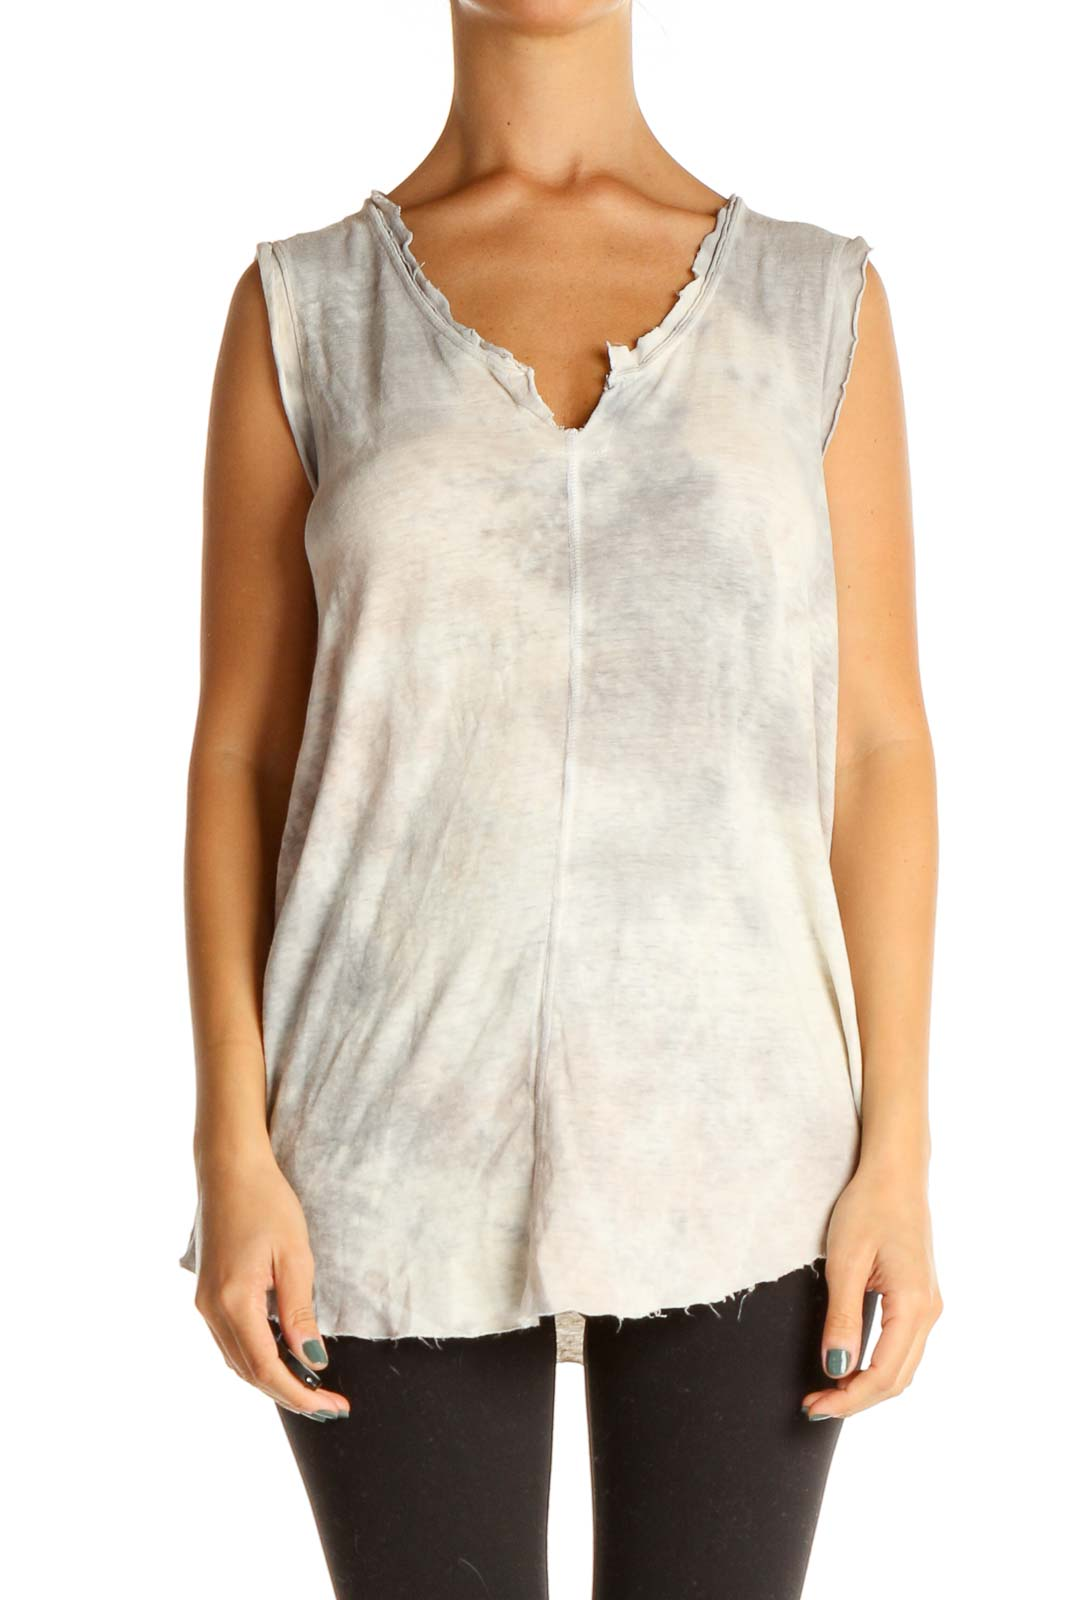 Gray Tie And Dye Chic Tank Top Front